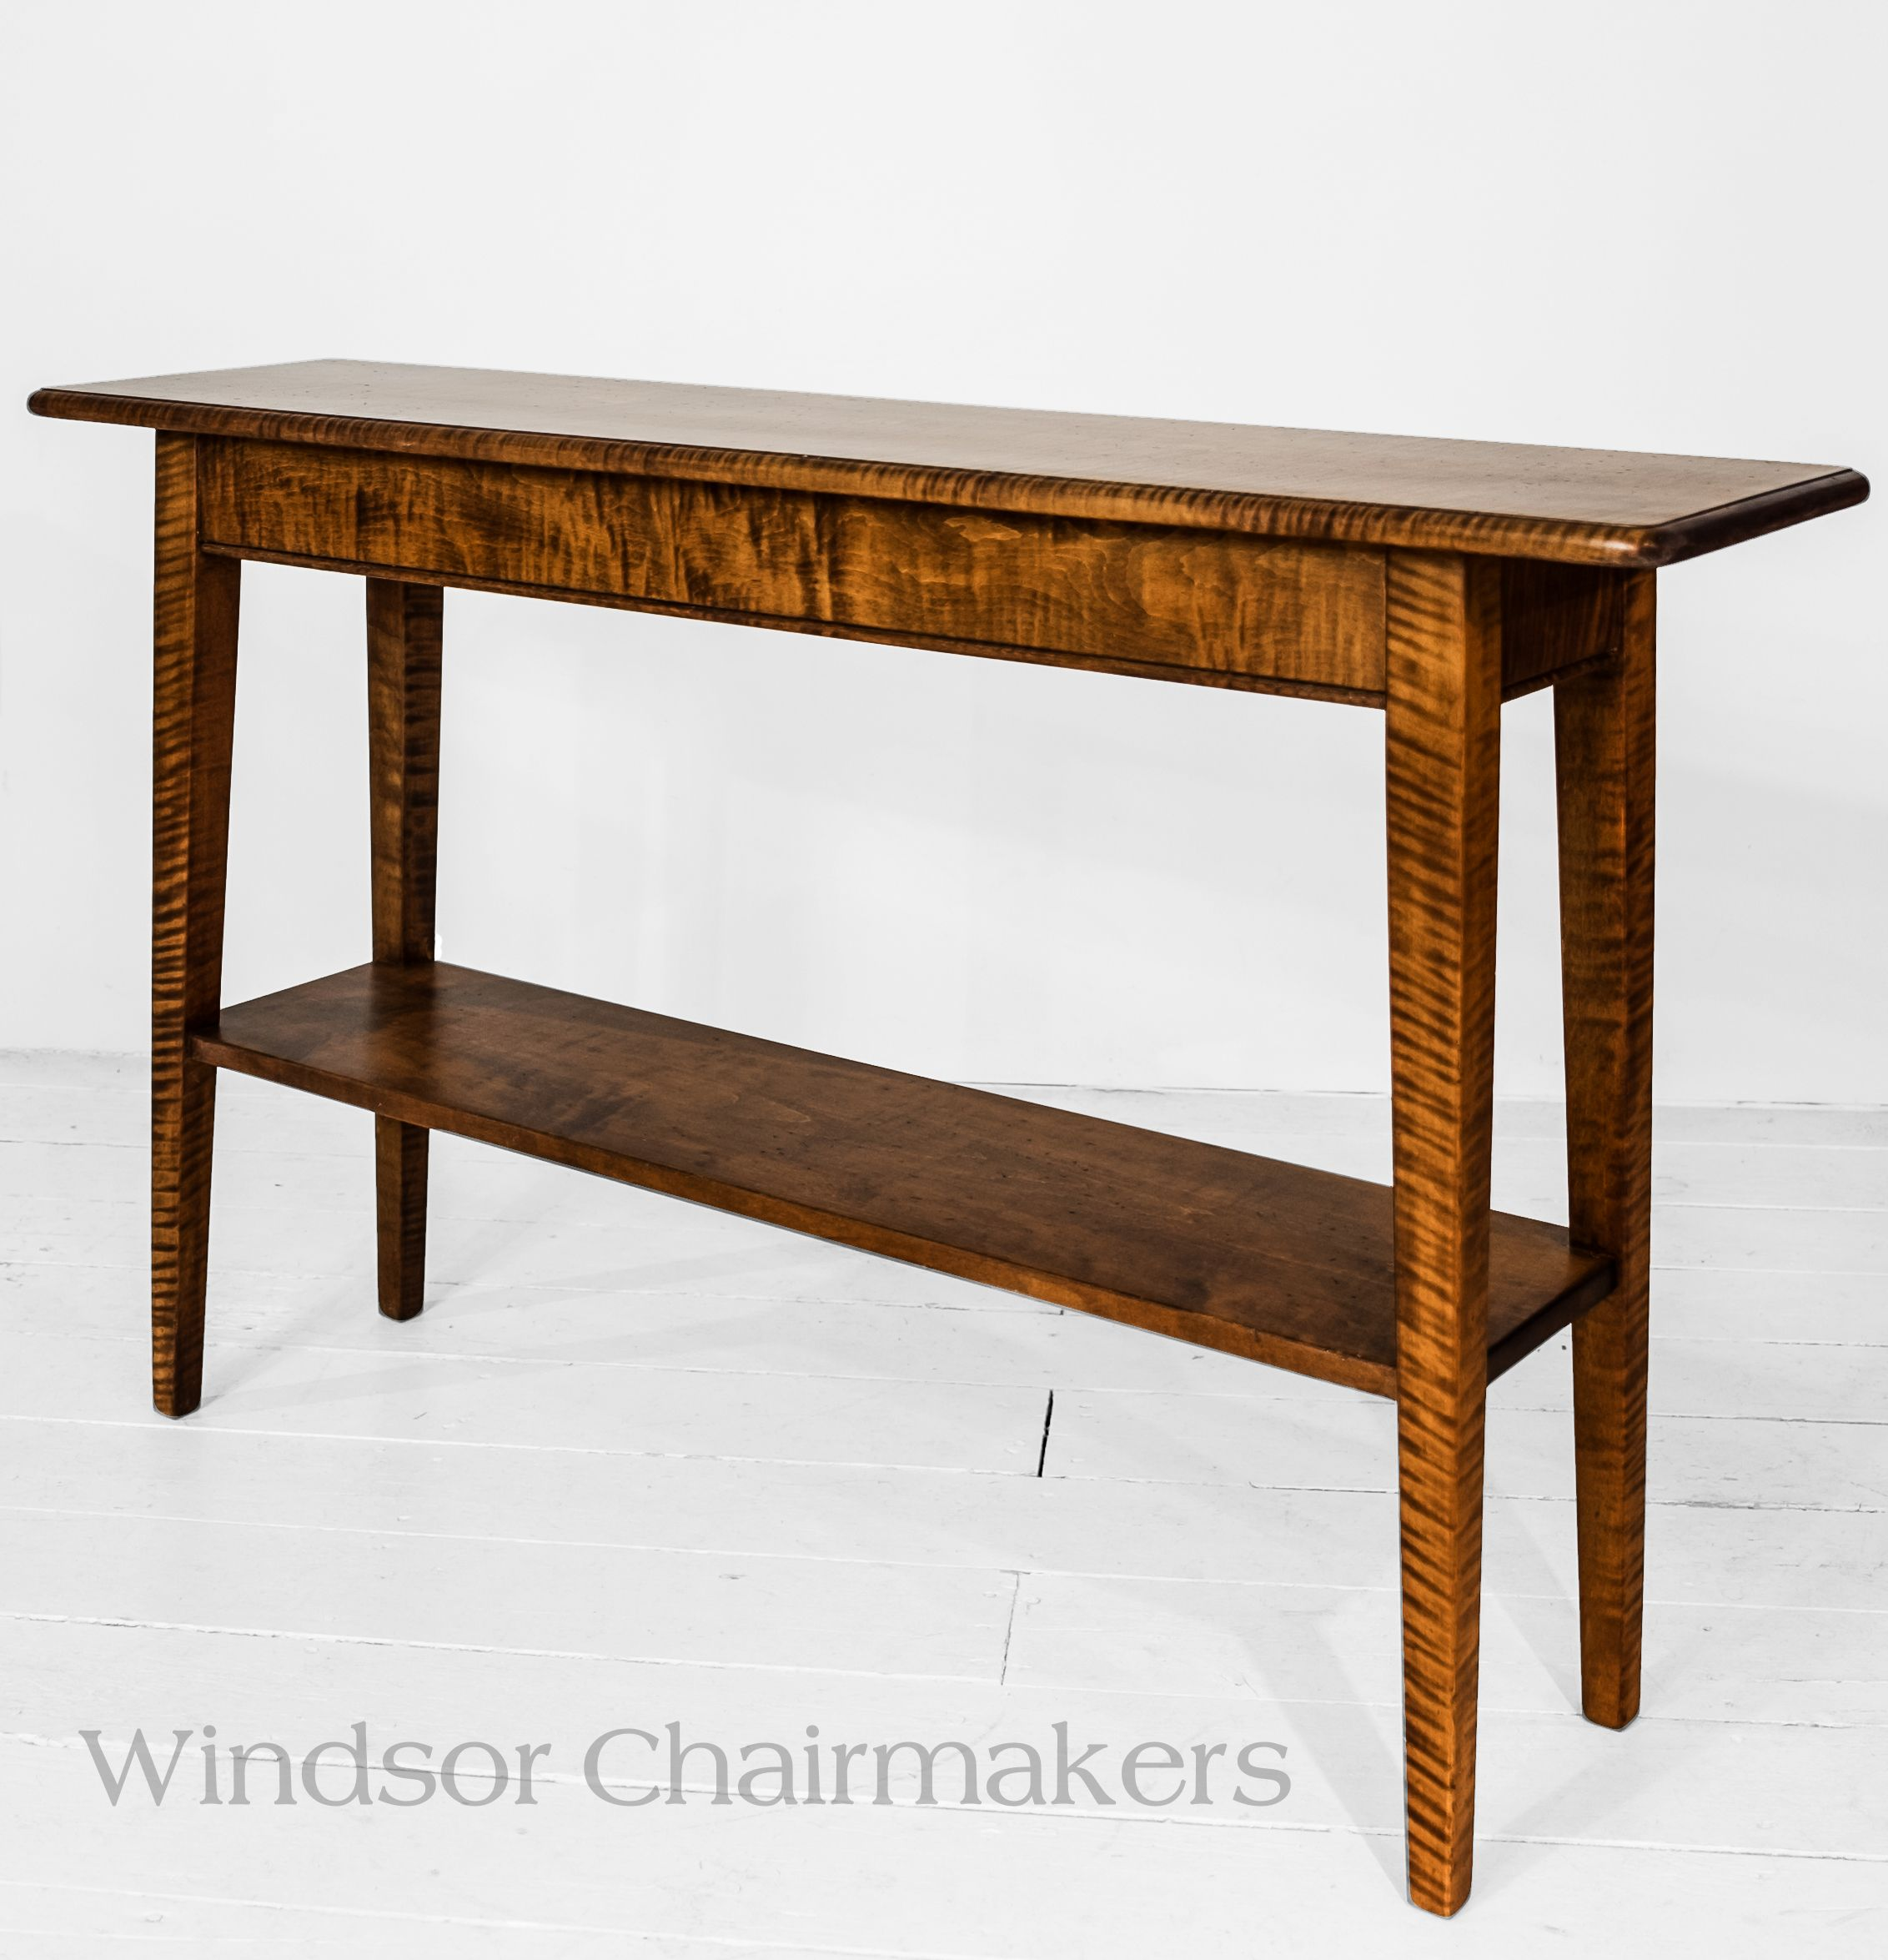 Console Table 48  x 12  x 28  high Wood Choices  Tiger maple. Console Table 48  x 12  x 28  high Wood Choices  Tiger maple